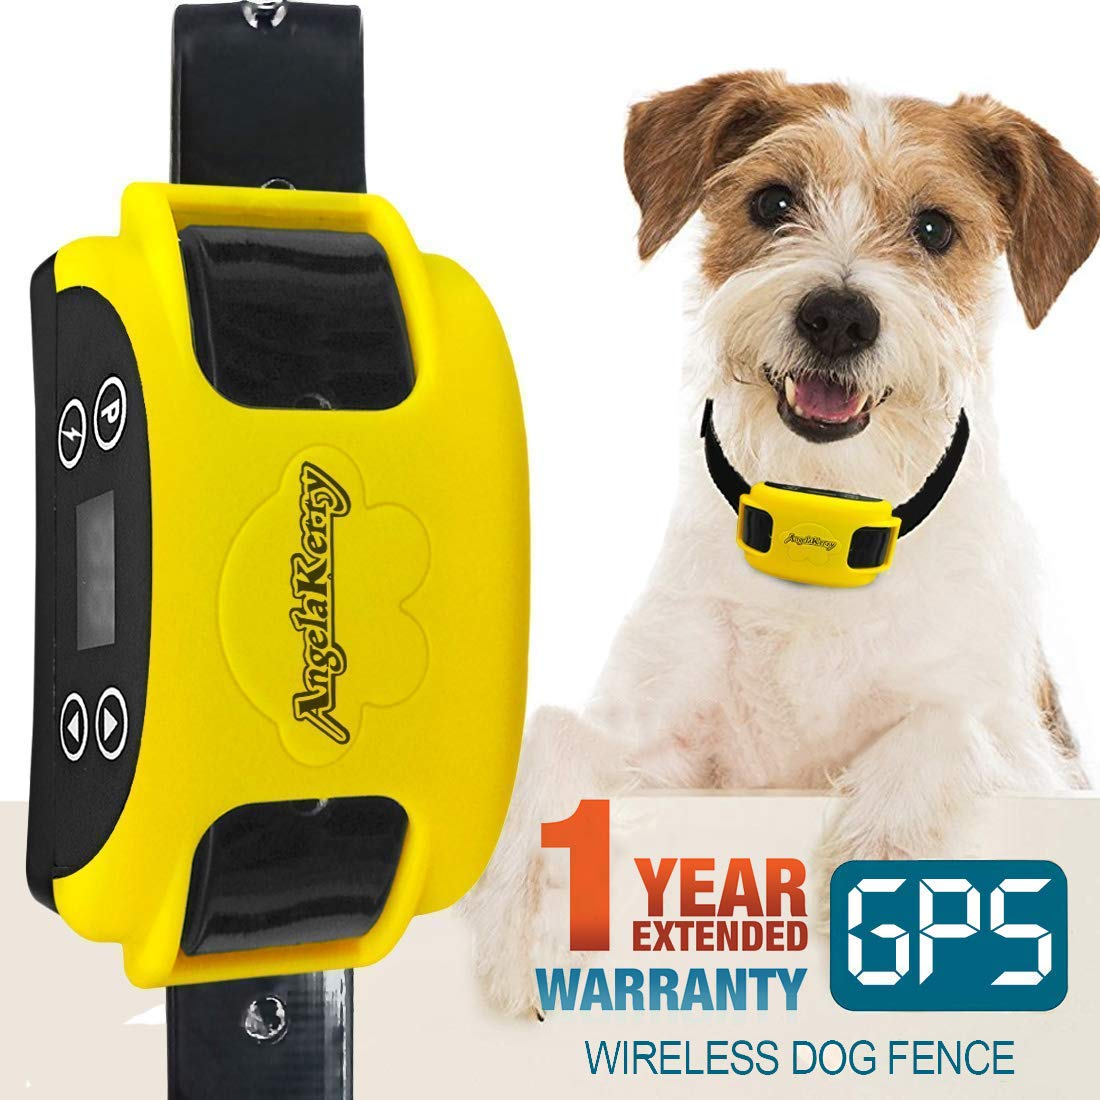 AngelaKerry Wireless Dog Fence System with GPS, Outdoor Pet Containment System Rechargeable Waterproof Collar EF 851S Remote for 15lbs-120lbs Dogs (1pc GPS Receiver by 1 Dog) by AngelaKerry